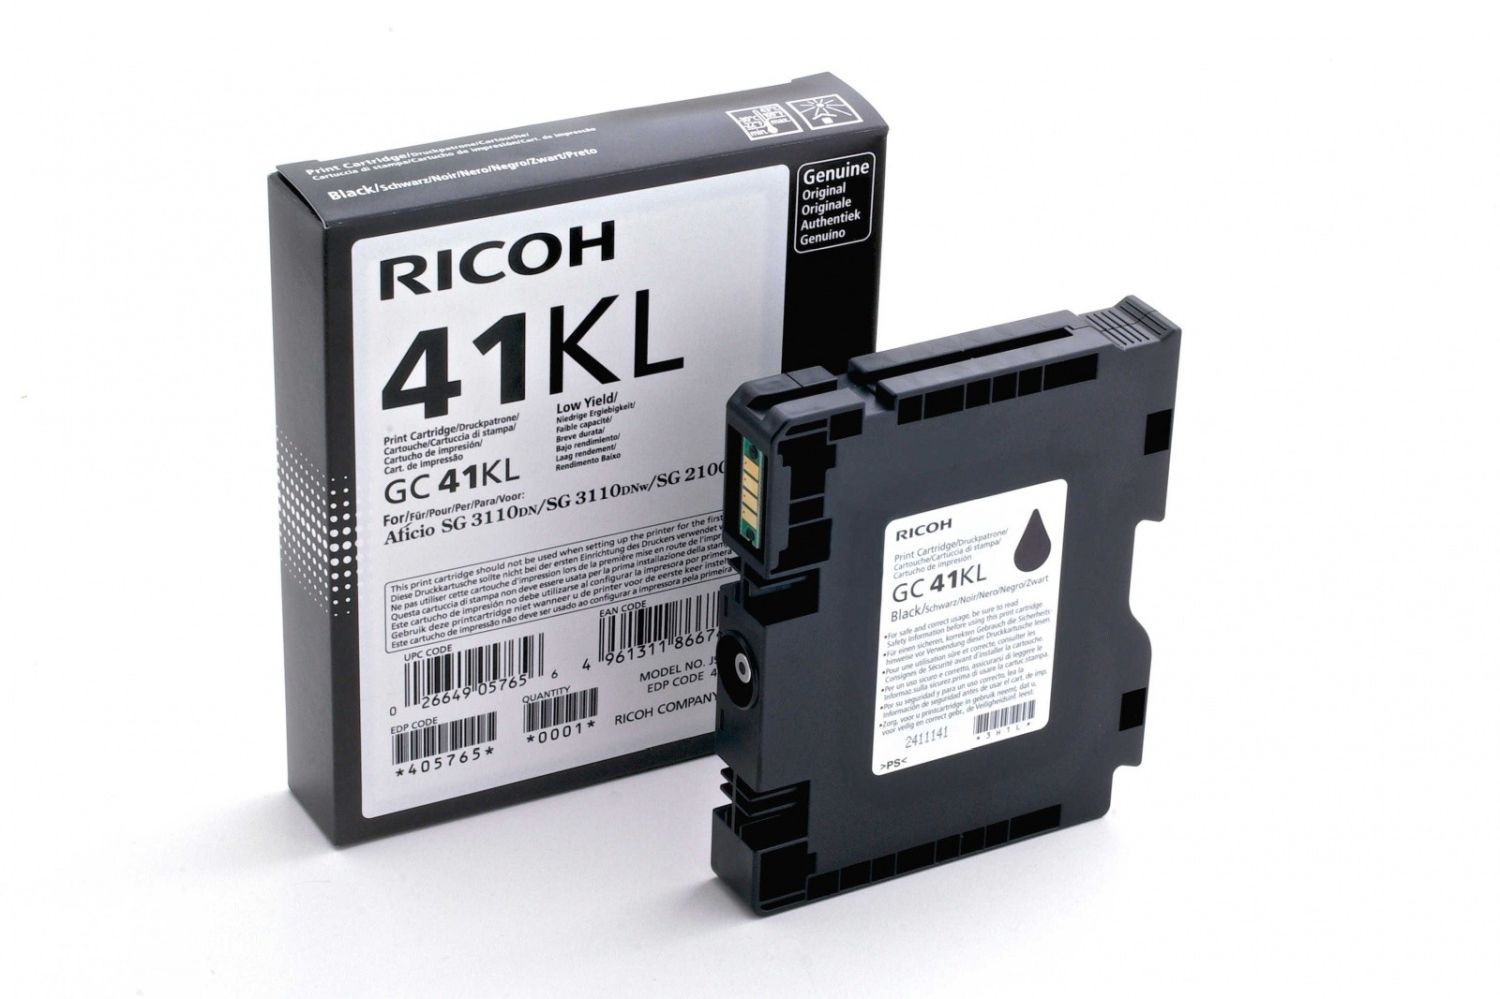 Ricoh Print Cartridge GC 41KL